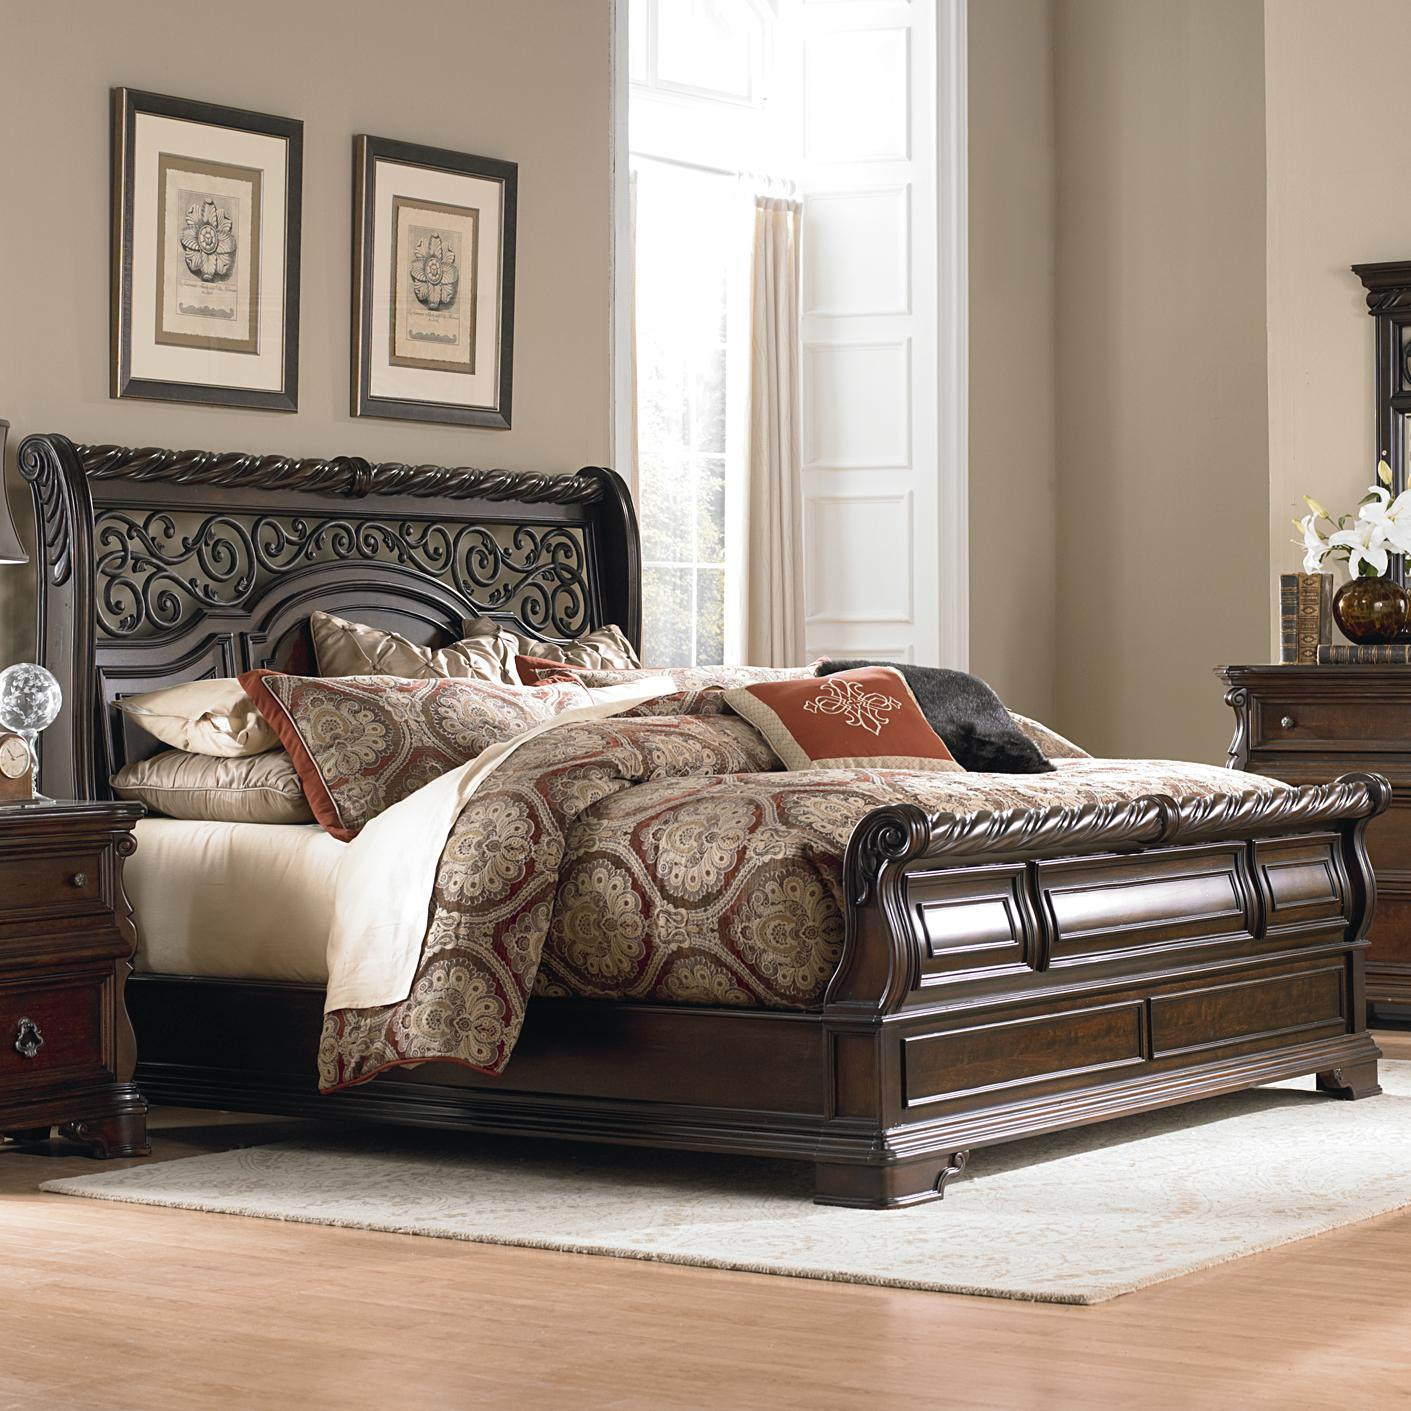 Liberty Furniture Arbor Place King Sleigh Bed - Item Number: 575-BR22F+H+90